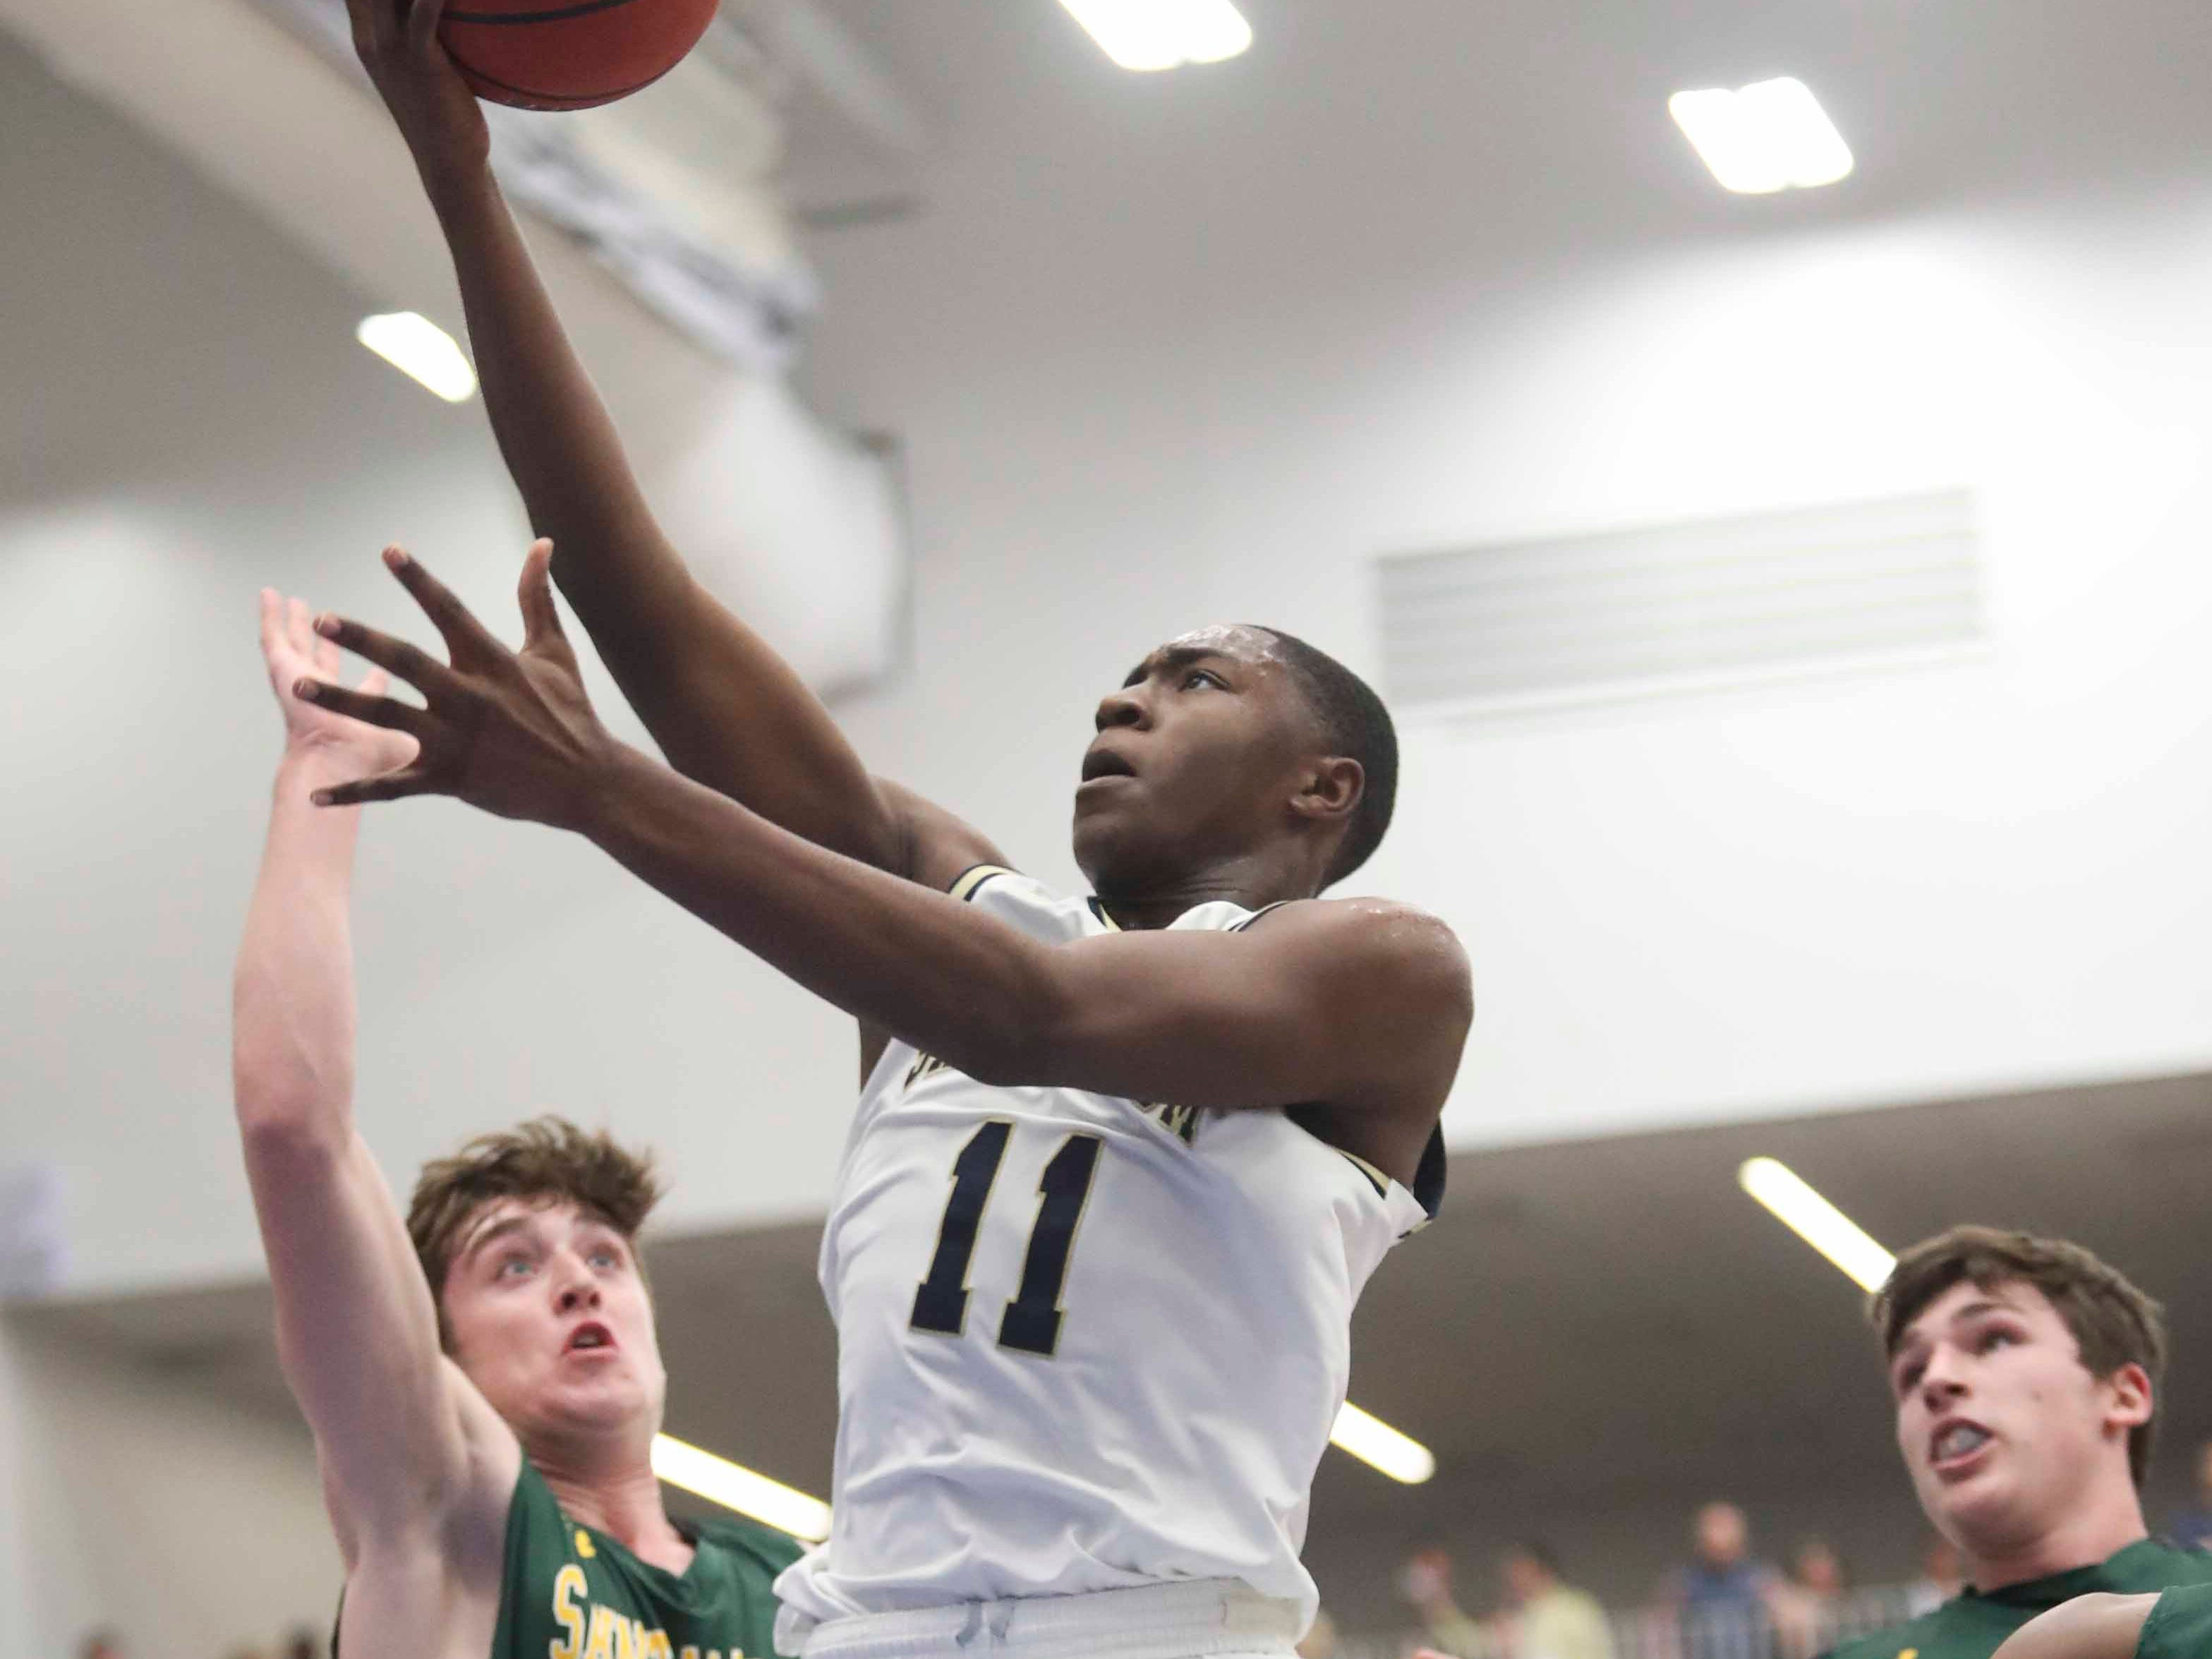 Salesianum's Darnell Vaughn (11) goes to the basket against St. Mark's Victor Marcelo (left) and Eric Ludman in the SL24 Memorial Basketball Classic at the 76ers Fieldhouse in Wilmington Friday.